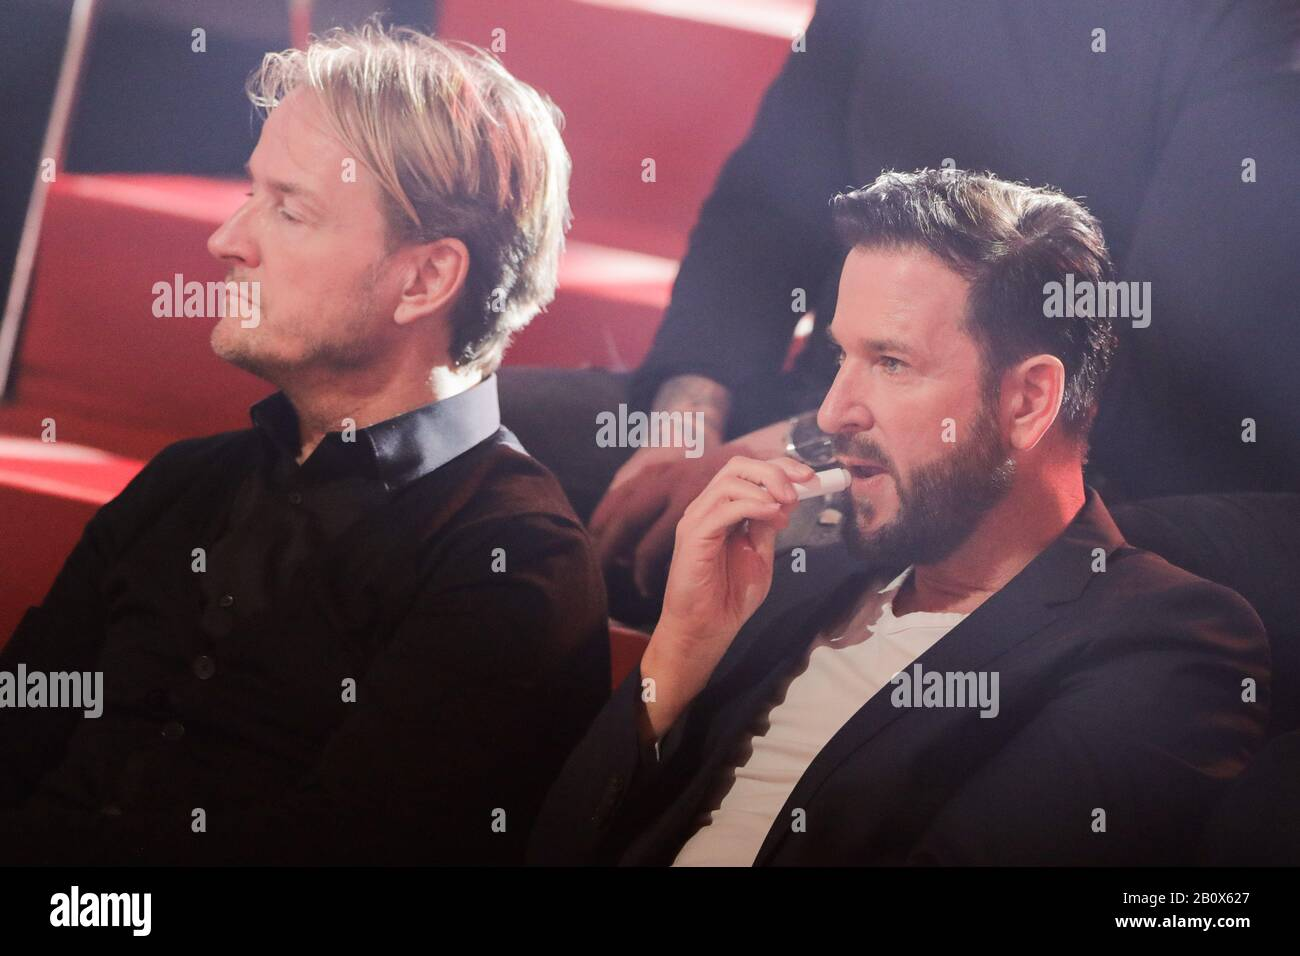 Cologne Germany 21st Feb 2020 Michael Wendler Singer Sits In The Audience In The Rtl Dance